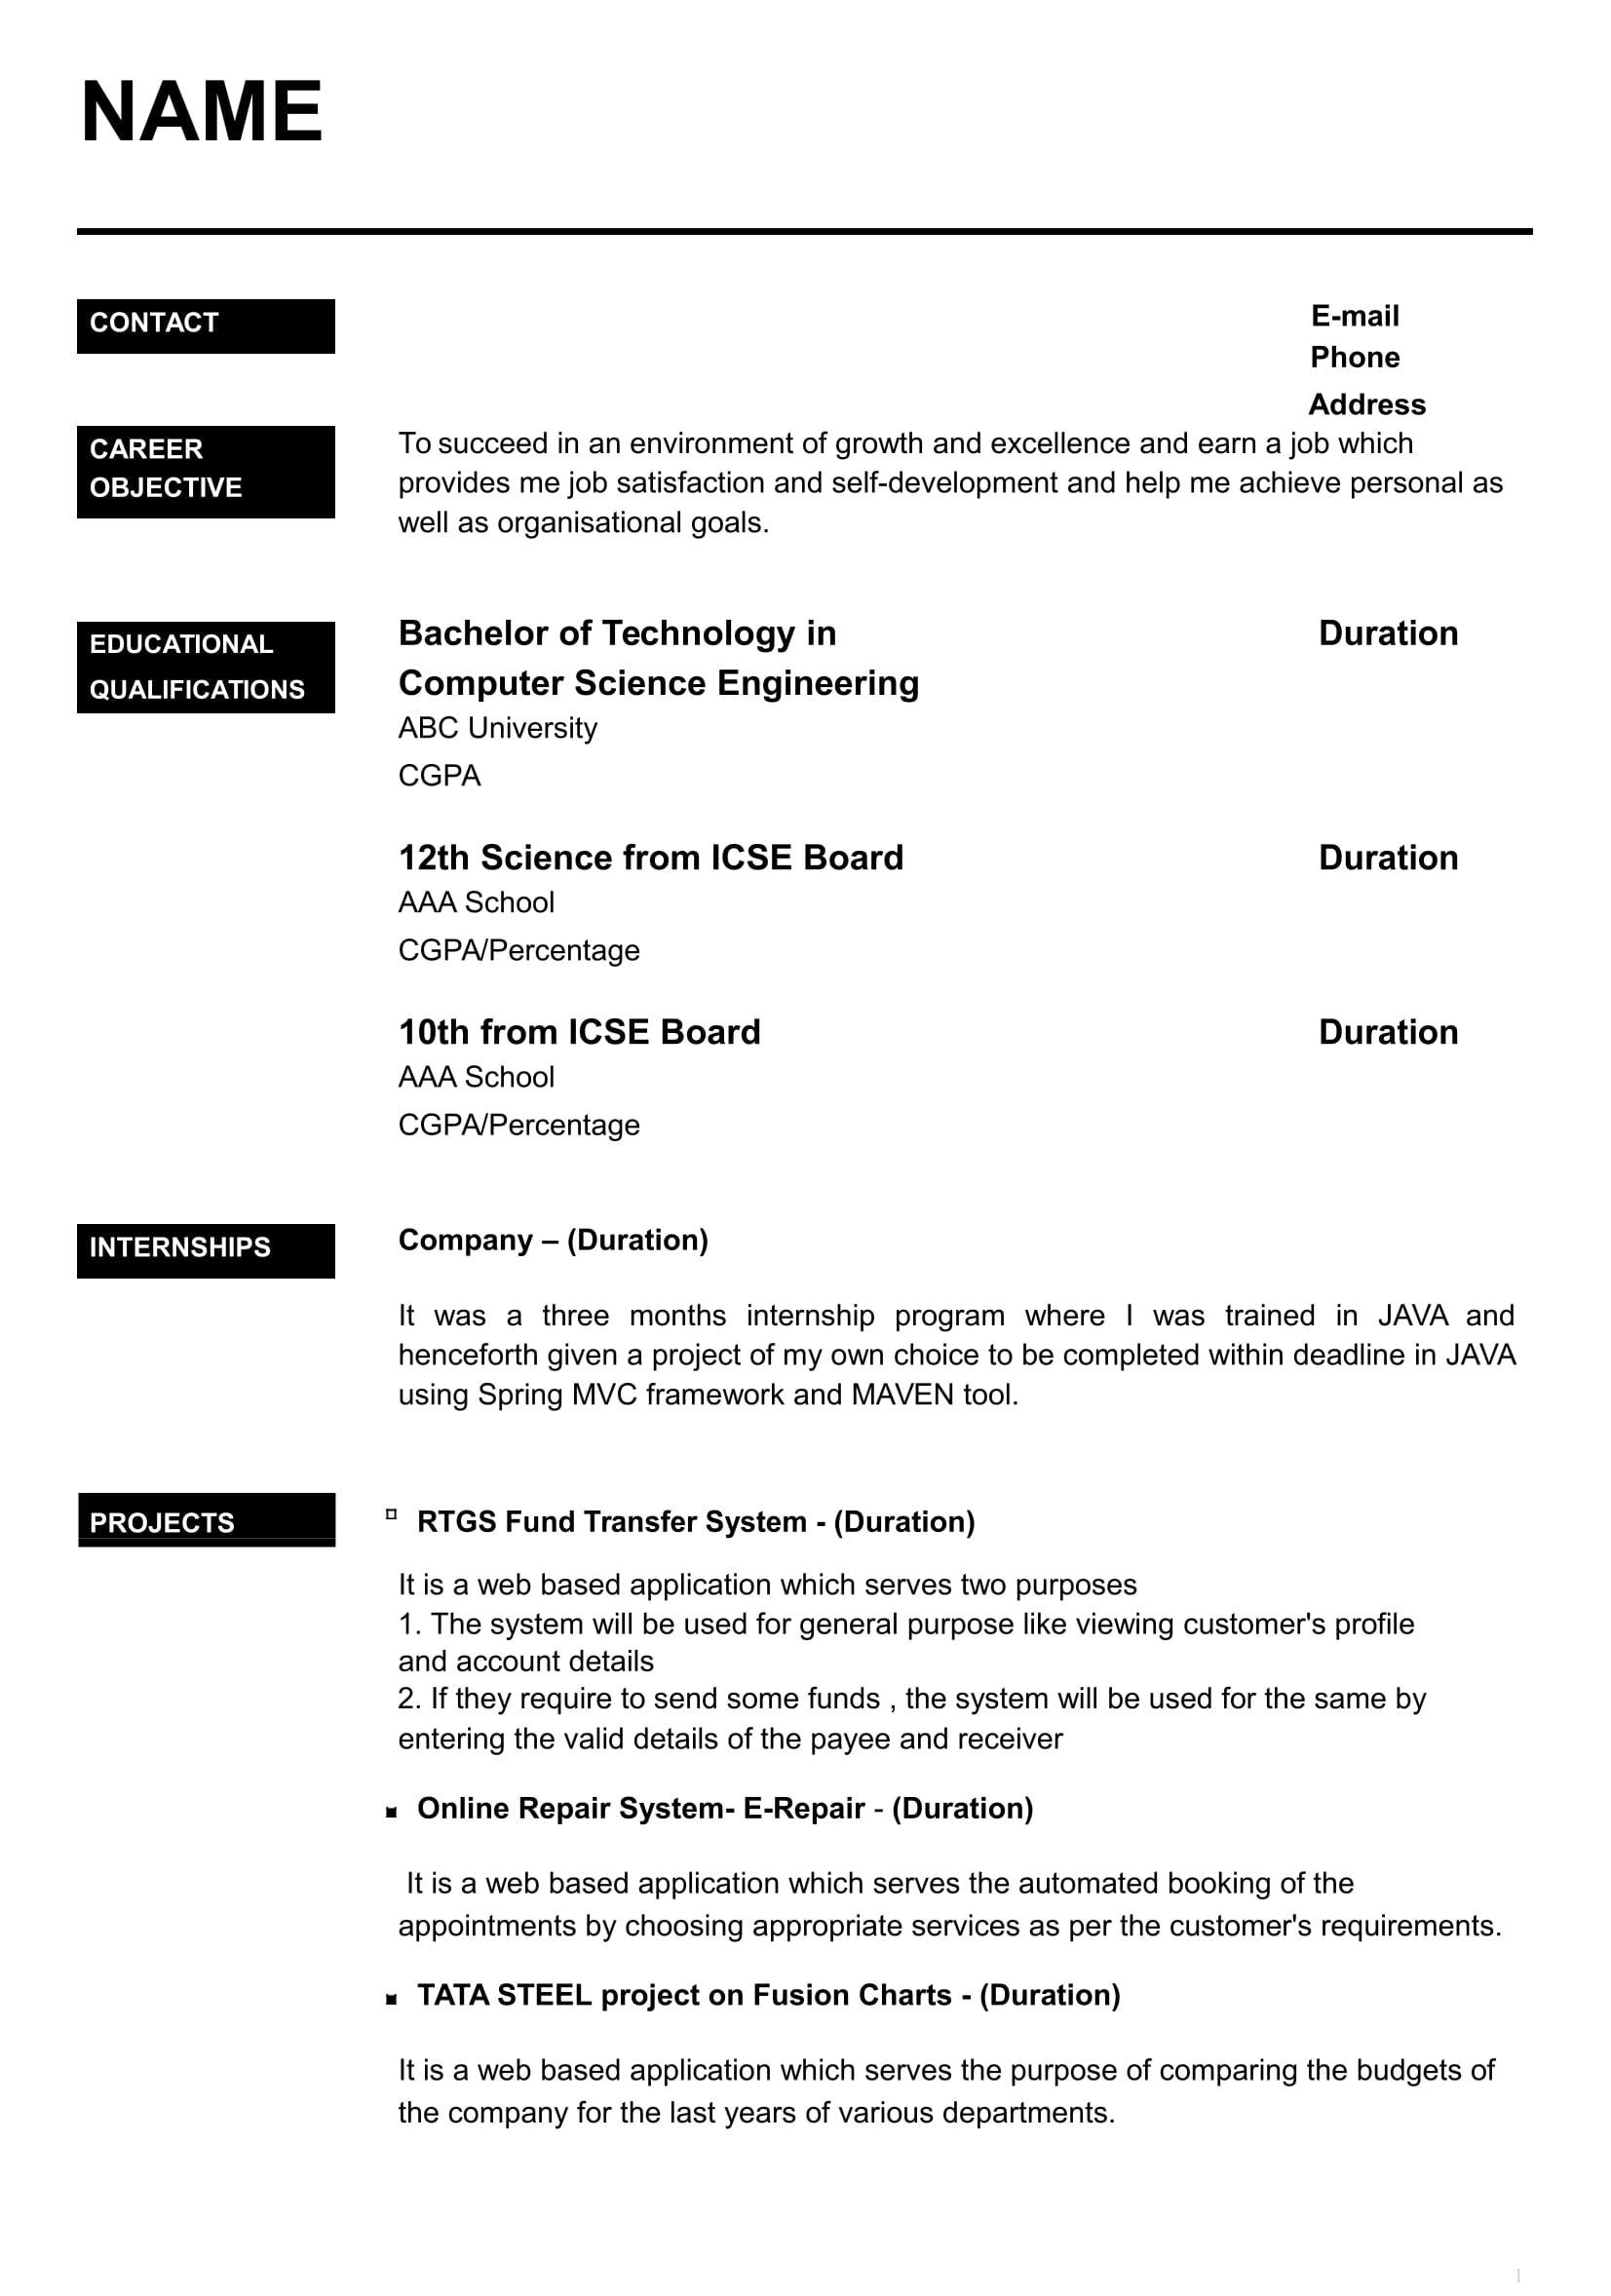 resume templates for freshers free word format awesome job template best layout of Resume Layout Of Resume For Freshers